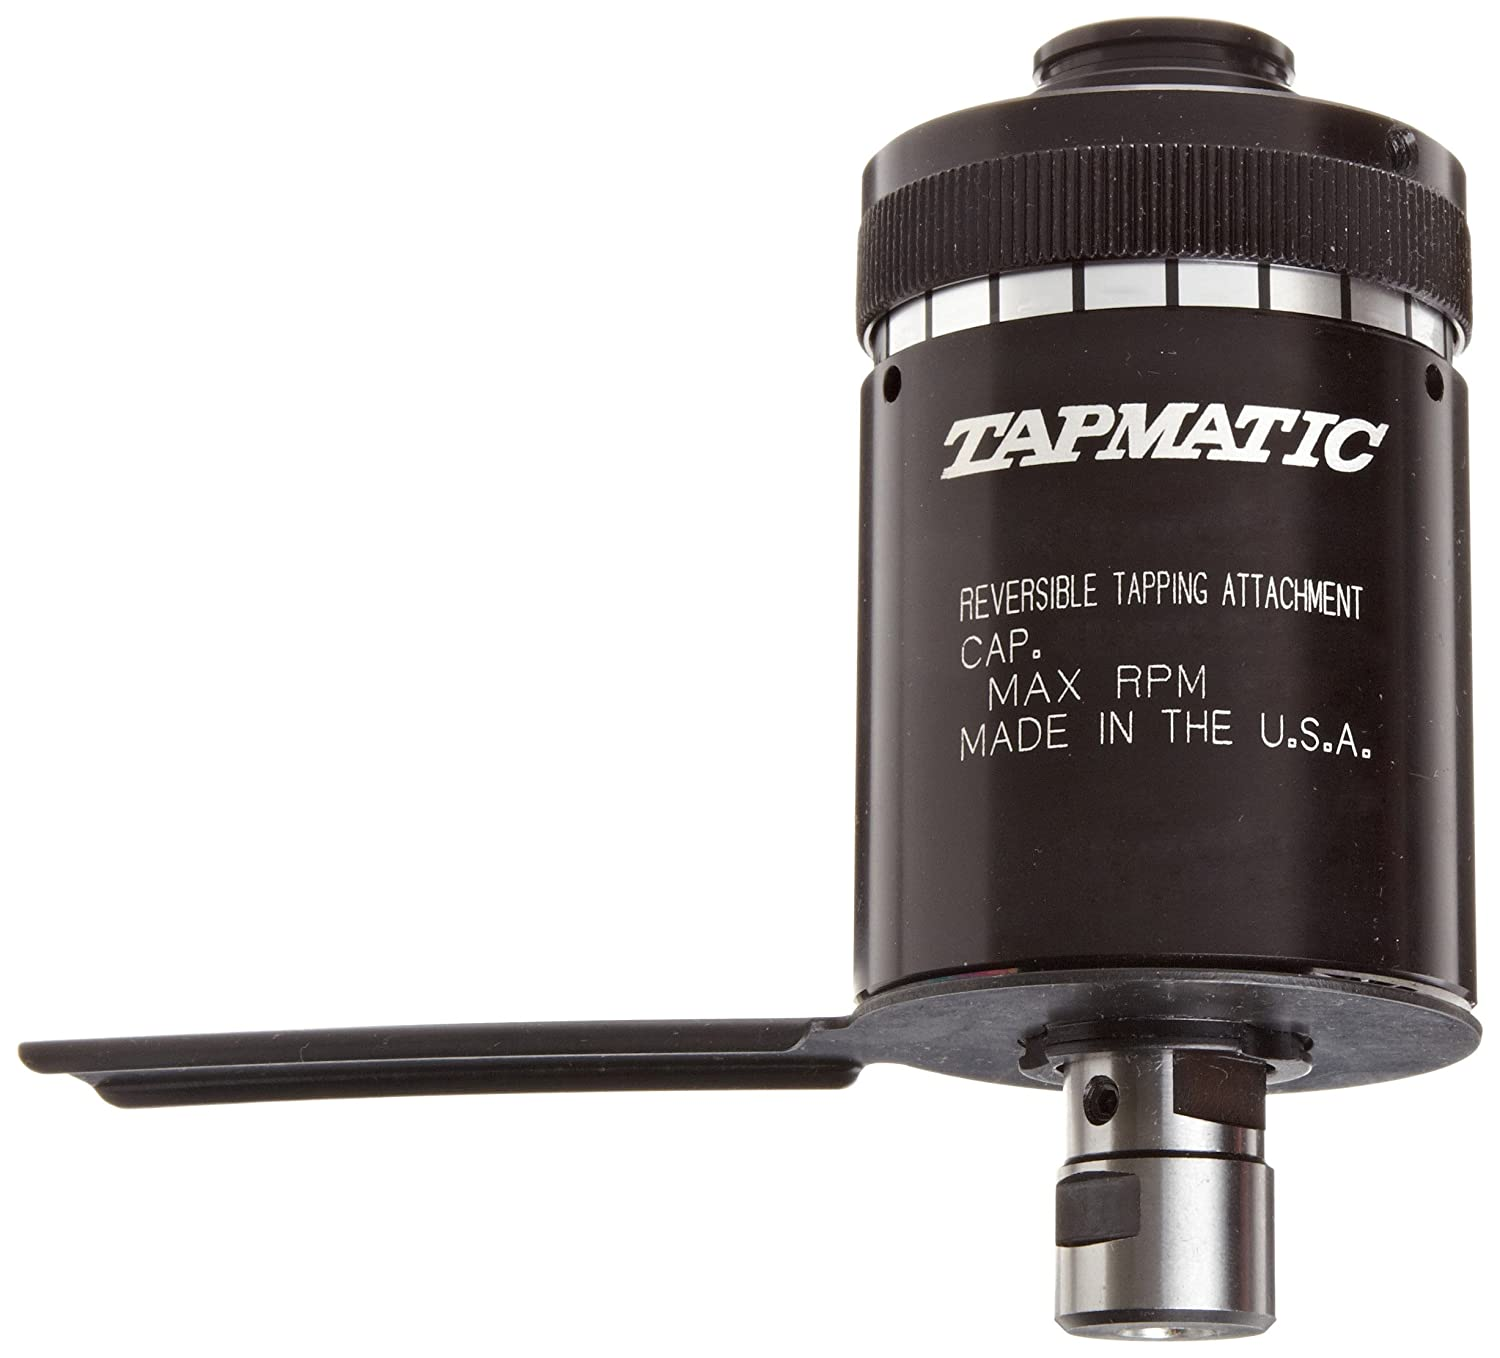 Tapmatic RX 30 Self-Reversing Tapping Head, 3/8'-24 Thread Mount, 0-1/4' and M1.4-M7 Capacity 3/8-24 Thread Mount 0-1/4 and M1.4-M7 Capacity Tapmatic Corporation 013037